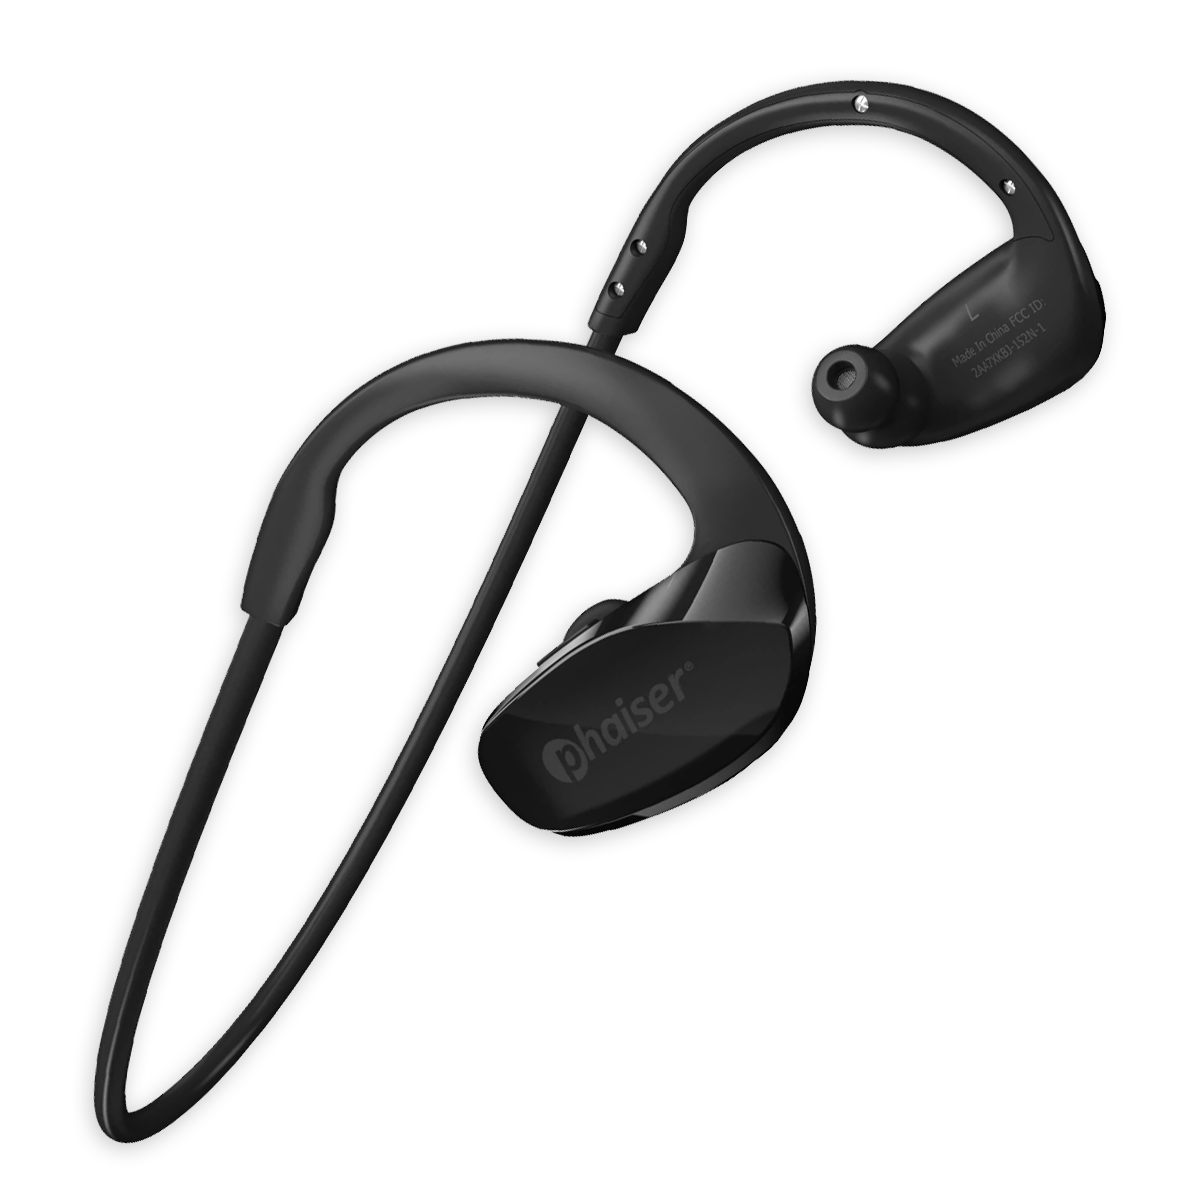 Phaiser Flexcore BHS-530 Stereo Wireless Earbuds